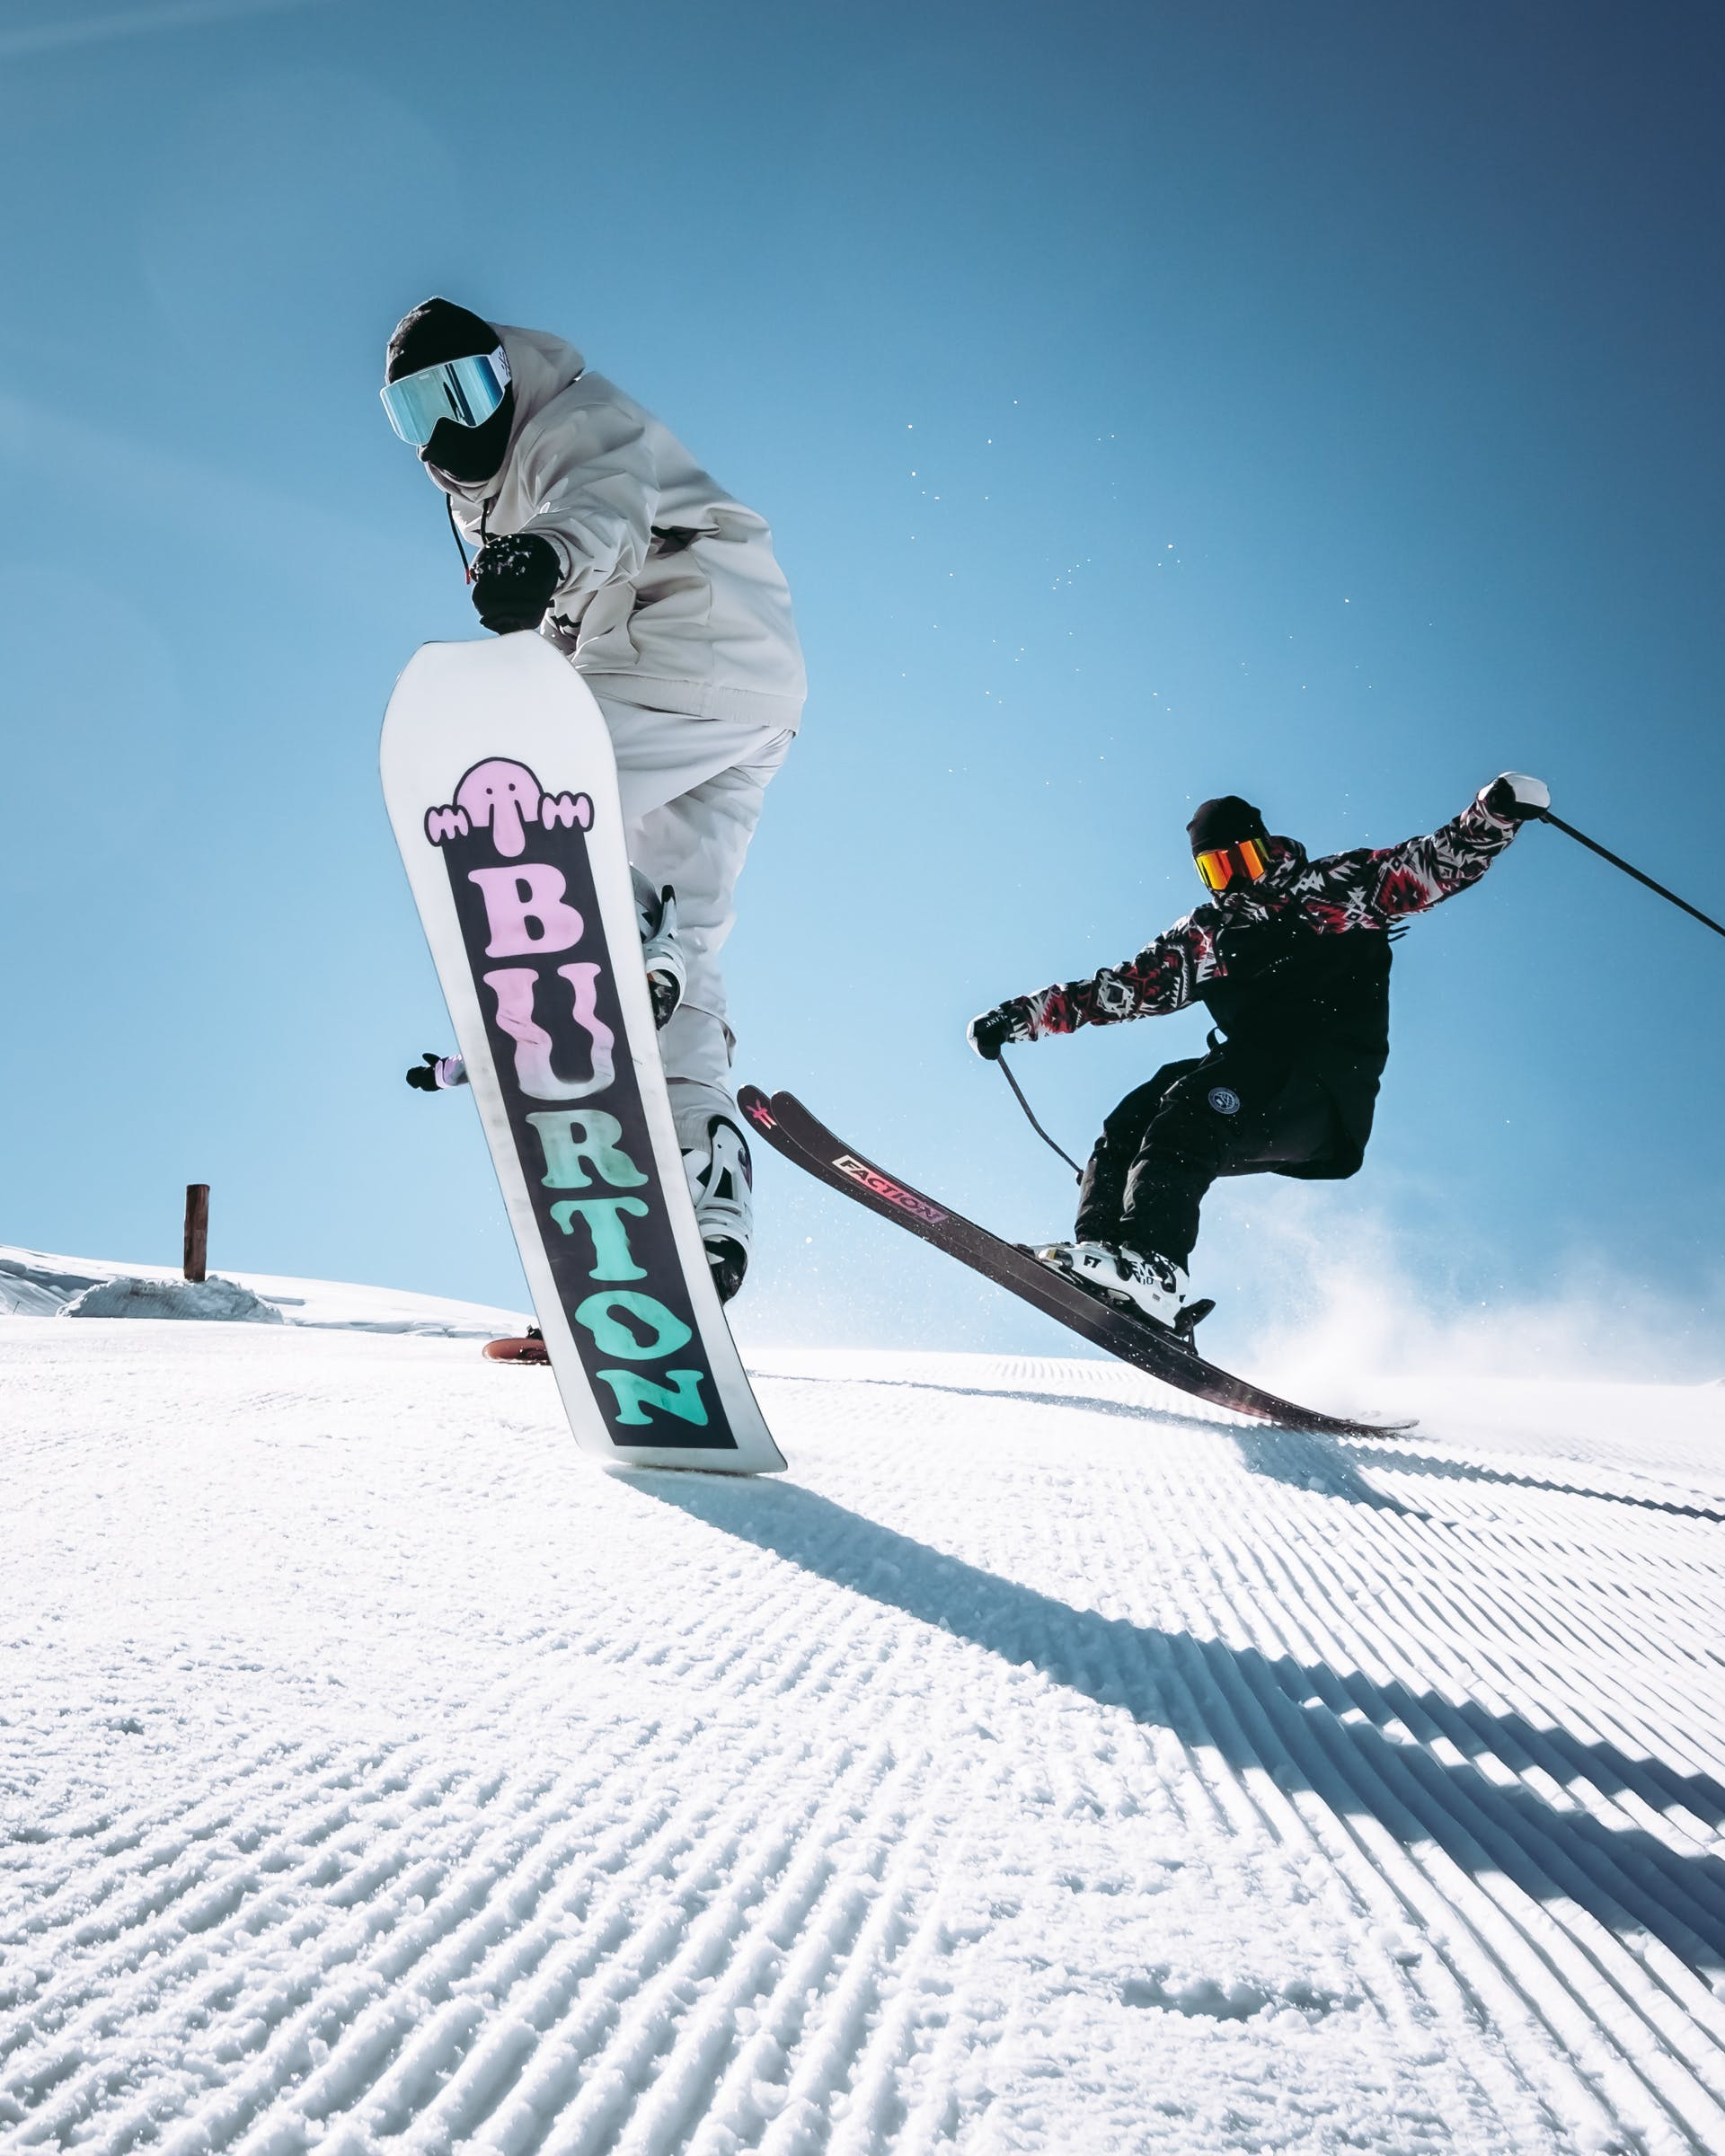 The commercialisation of snowboarding